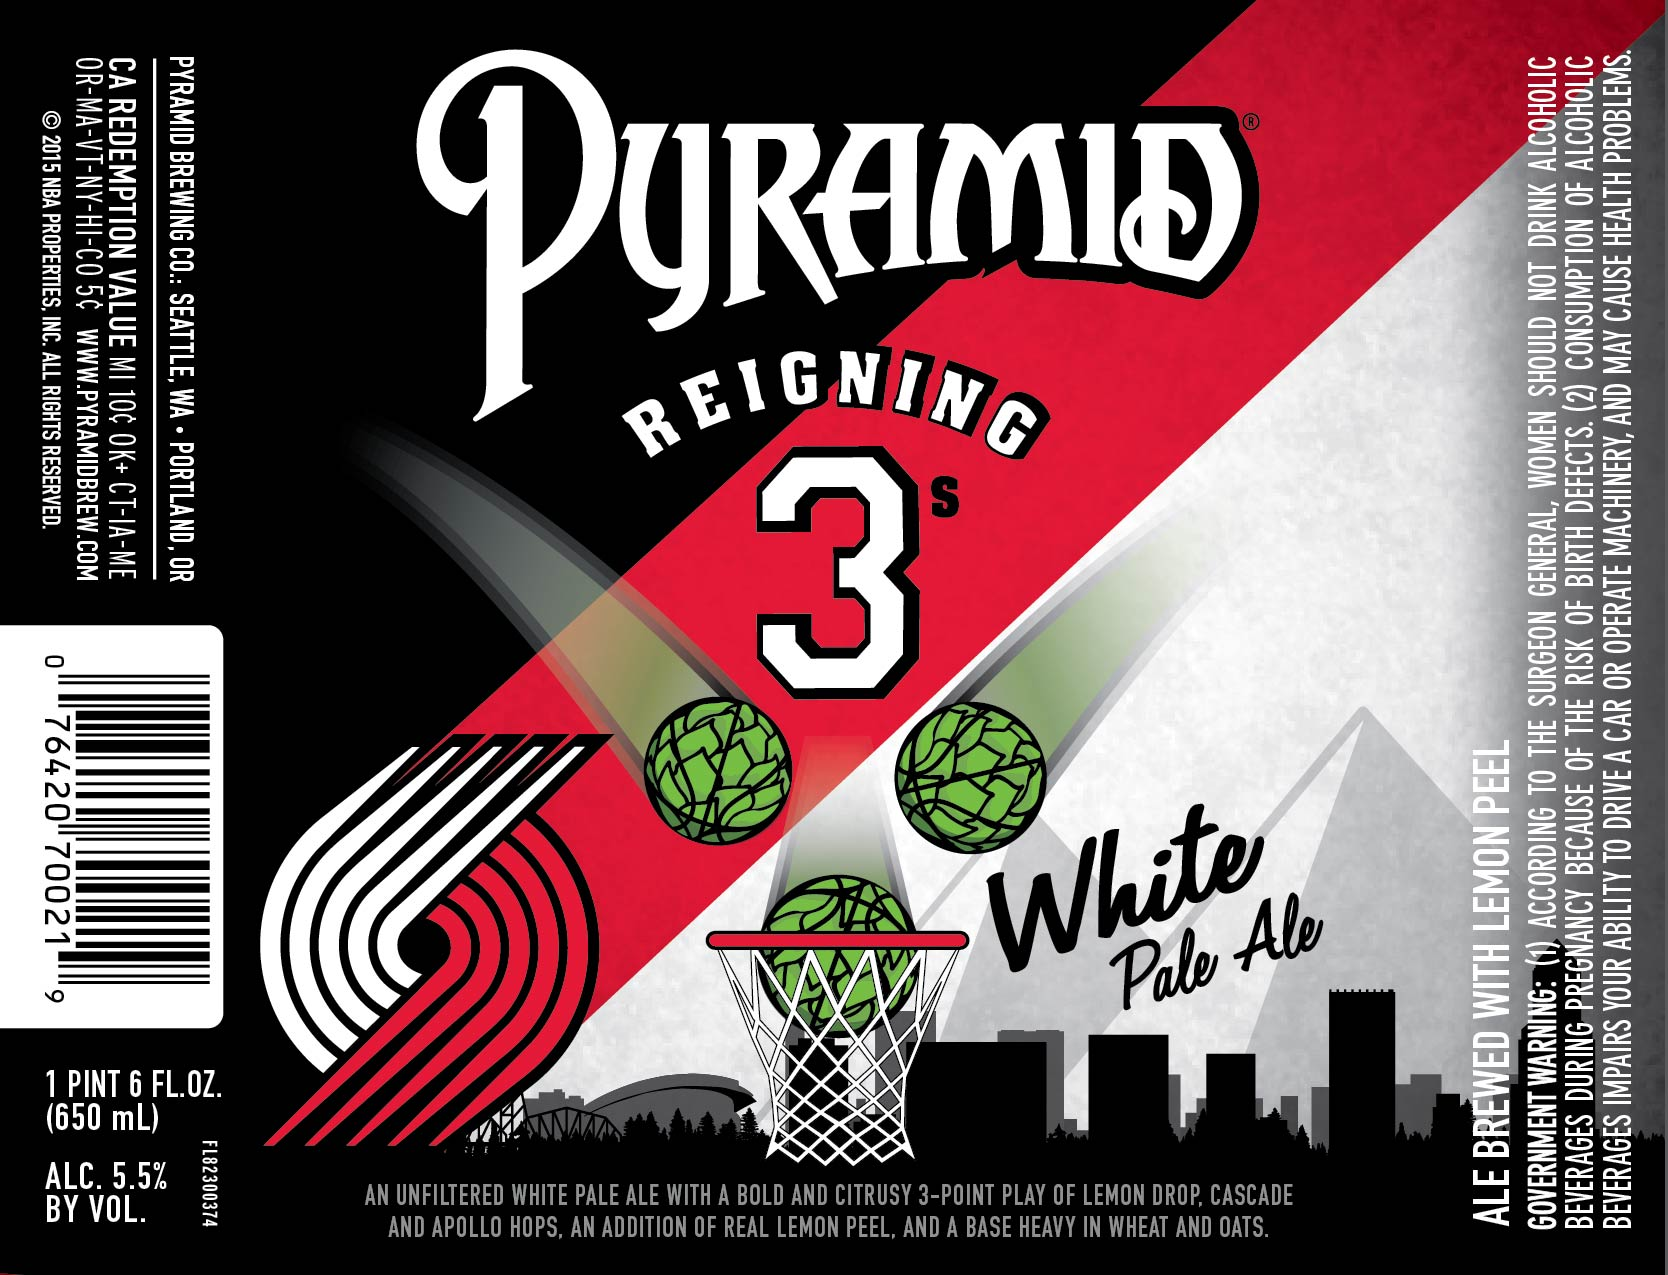 moda center limited edition reigning 3's beer